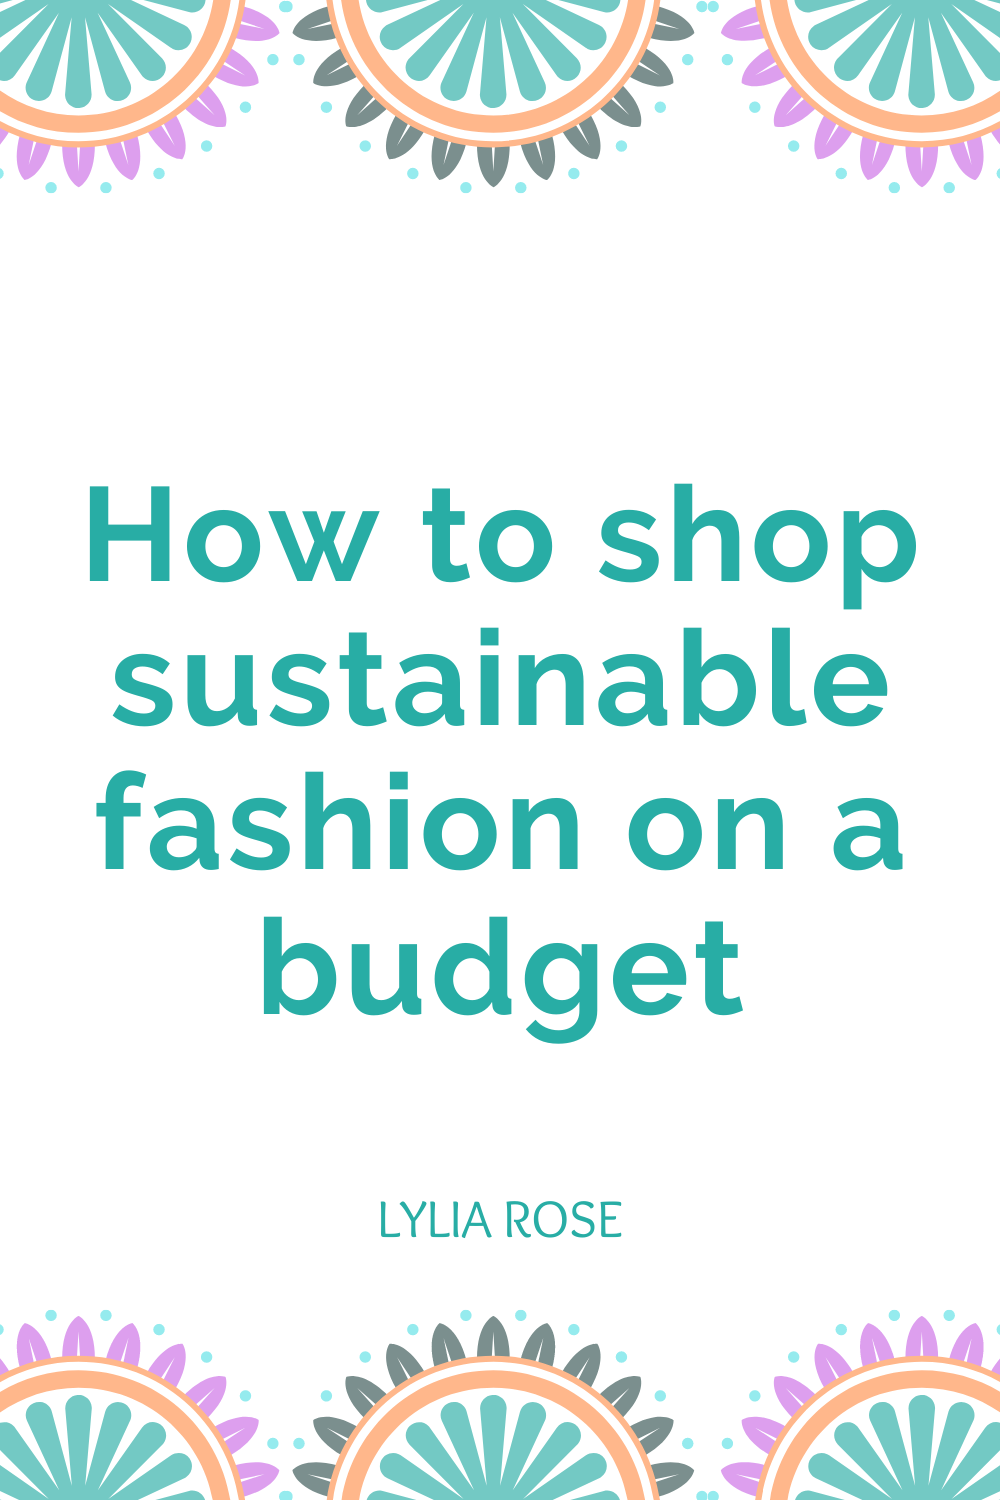 How to shop sustainable fashion on a budget (1)